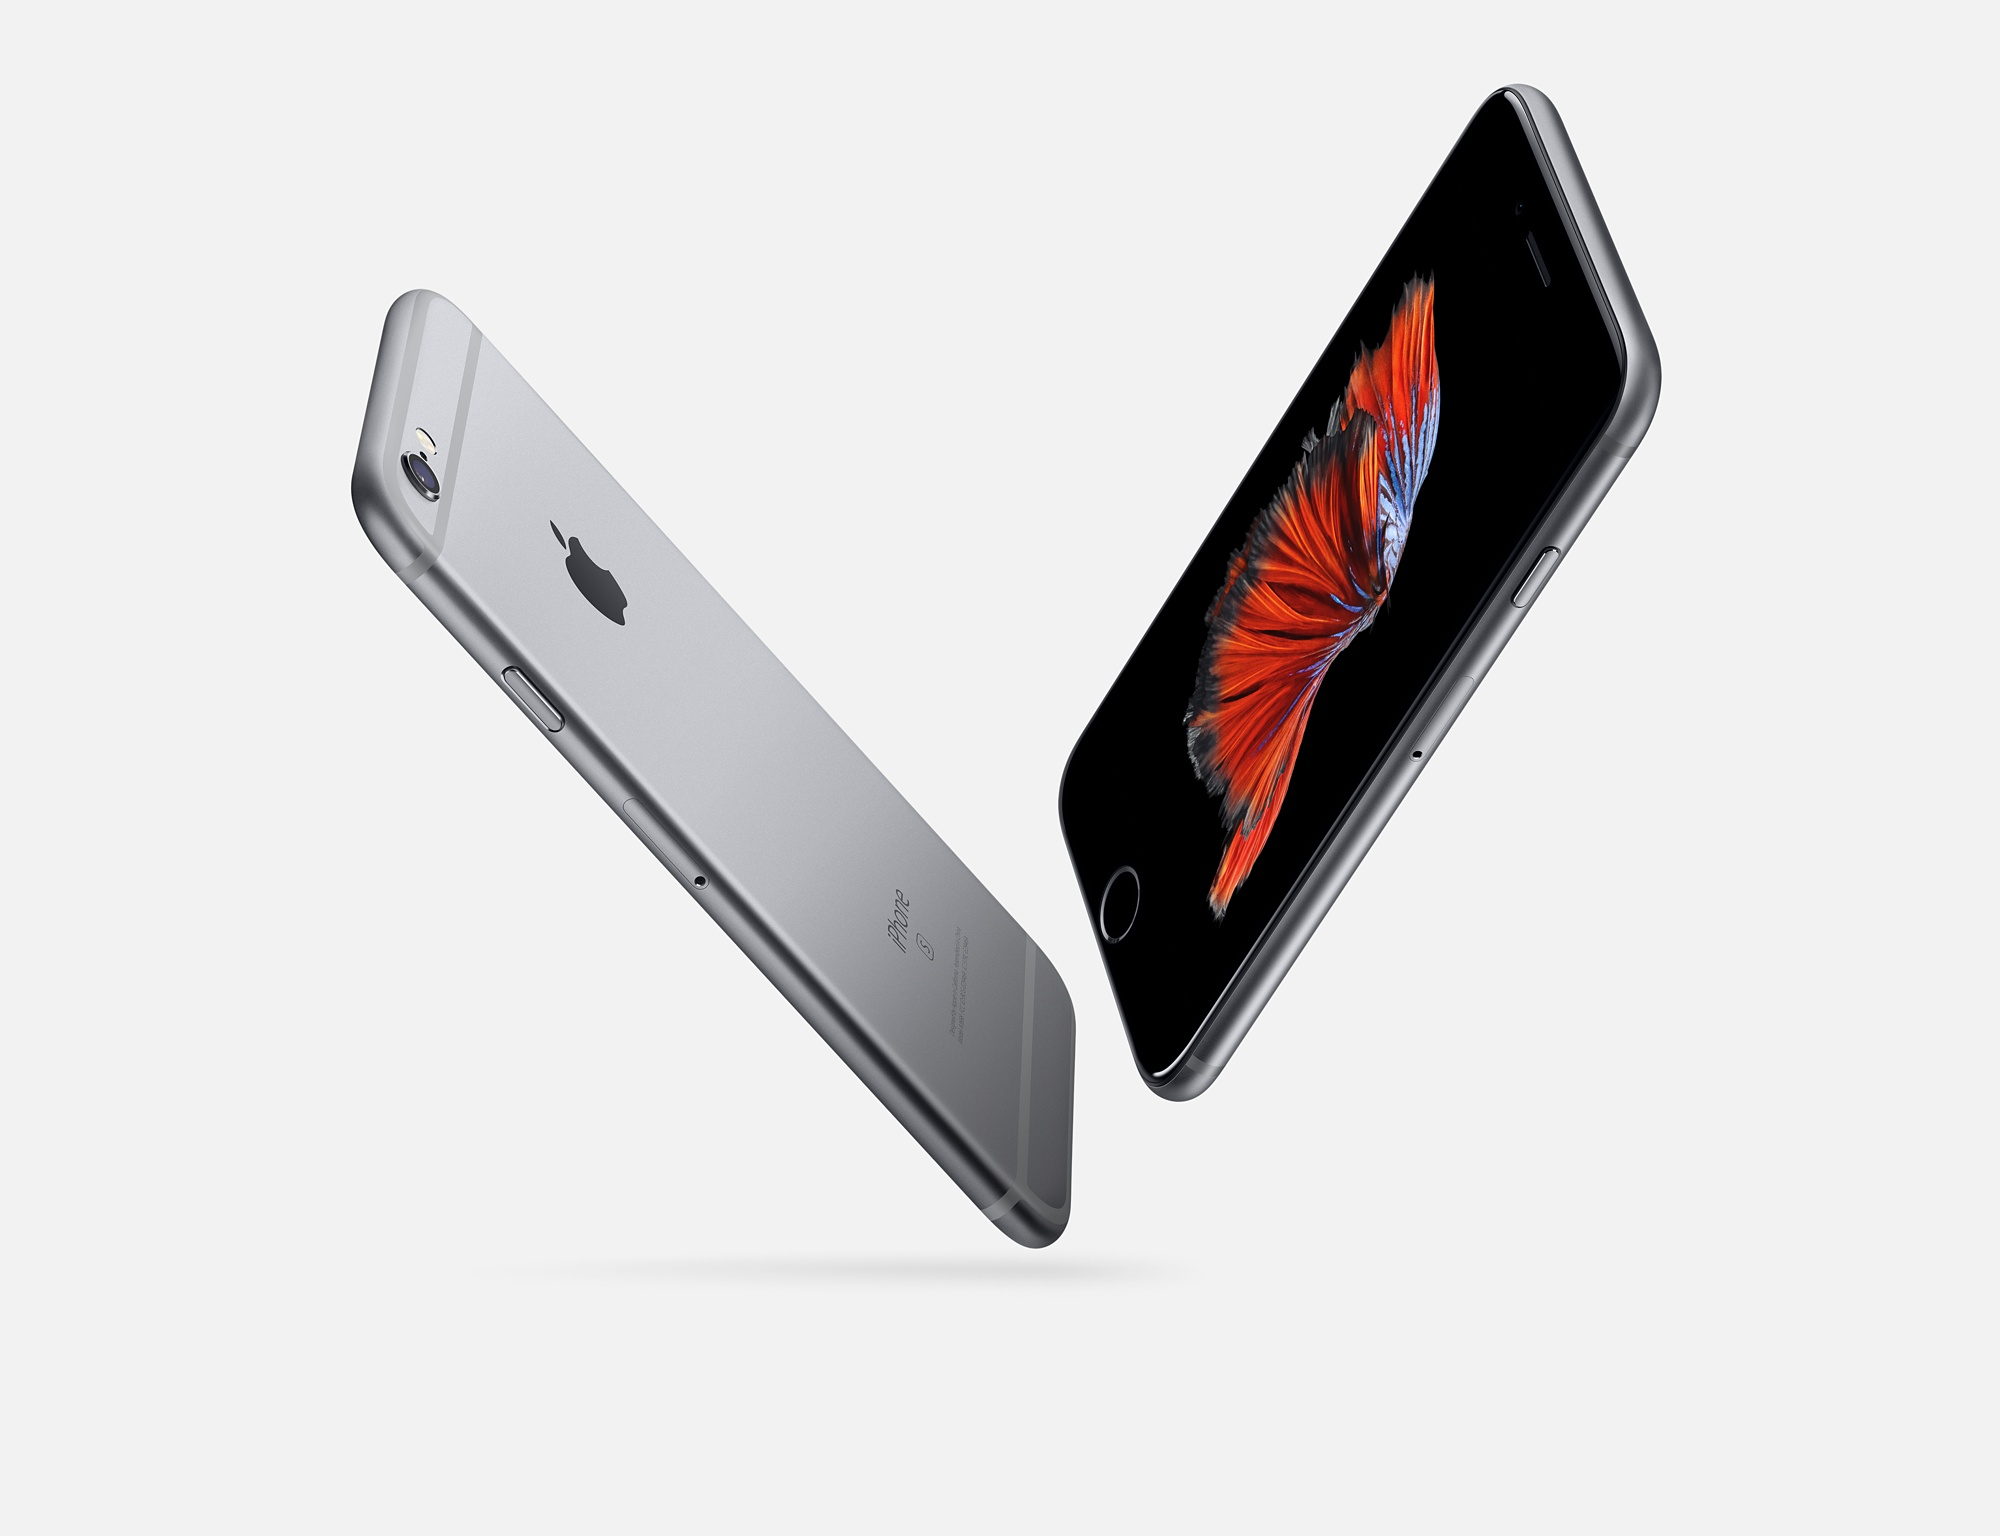 iPhone 6 Plus Space Gray zdroj Apple.com